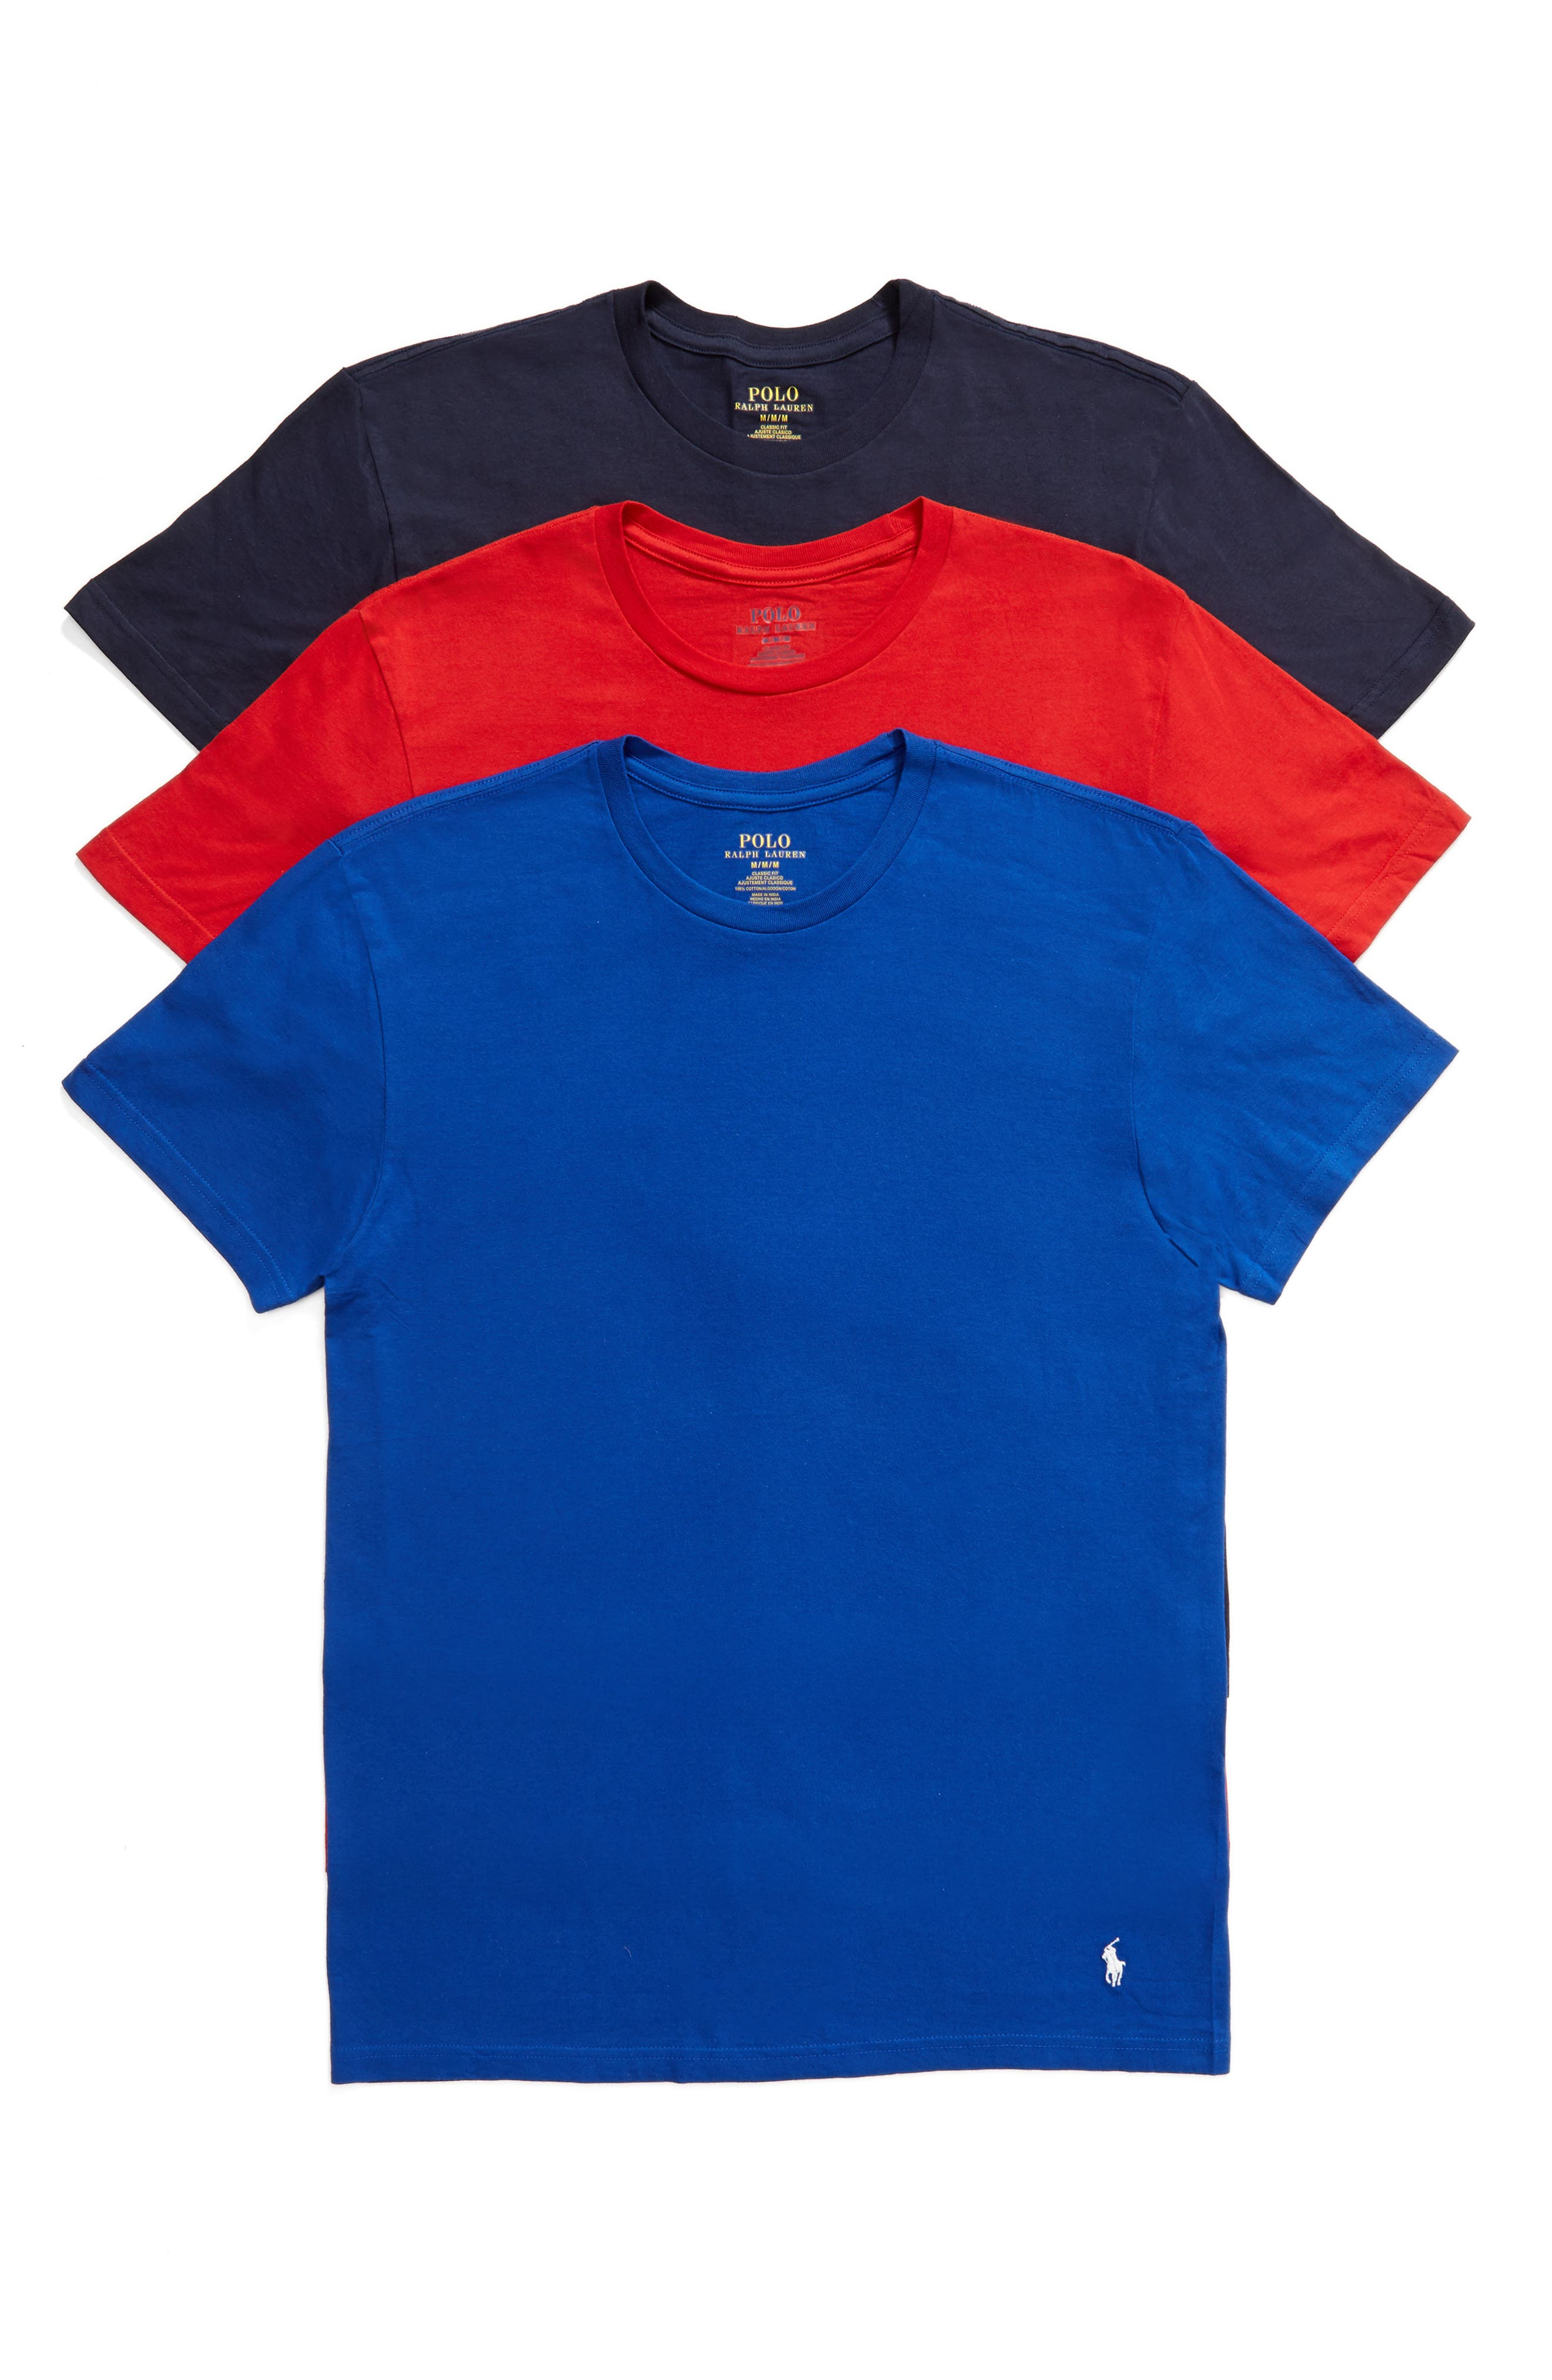 POLO RALPH LAUREN 3-Pack Crewneck T-Shirts, Main, color, CRUISE ROYAL/ RED/ CRUISE NAVY